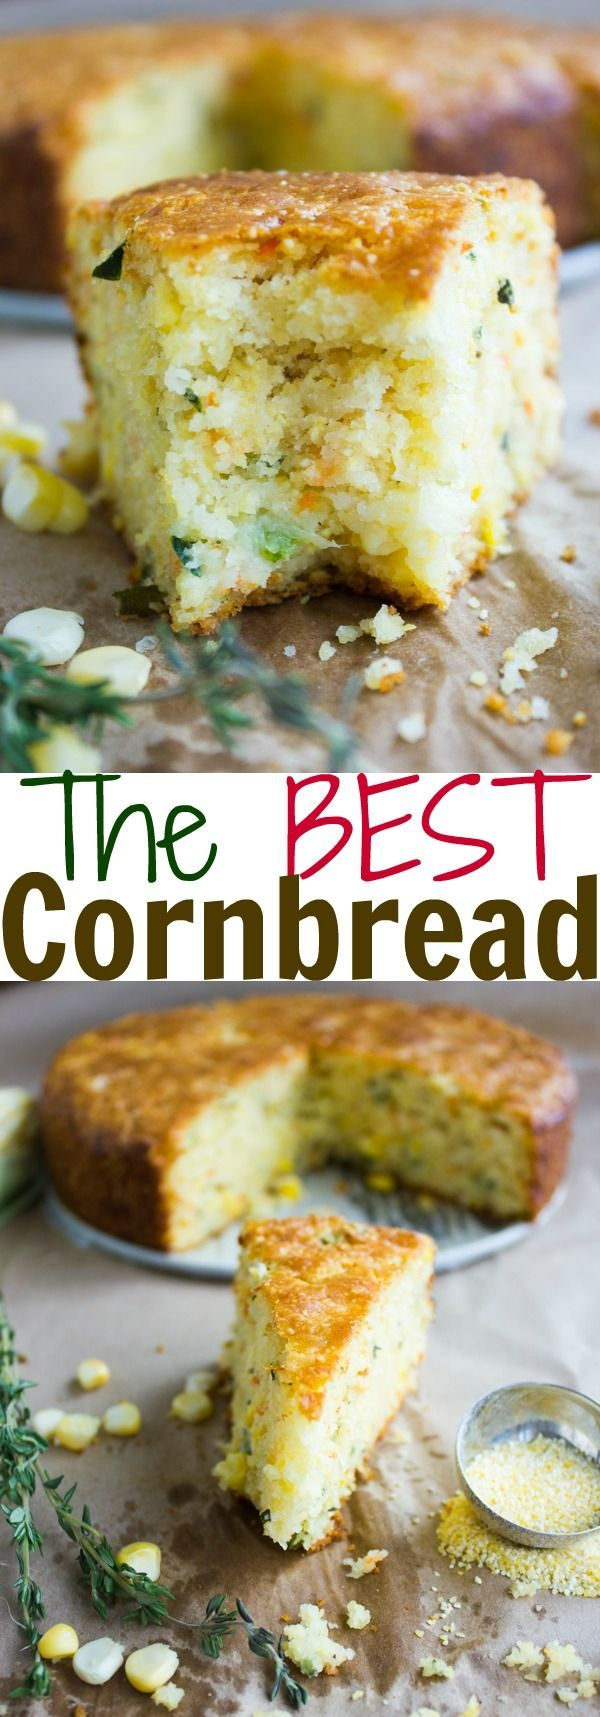 Still looking for the perfect ultimate best cornbread recipe? tender, fluffy, light, buttery, studded with corn--it's here! Easy, quick, delicious recipe!